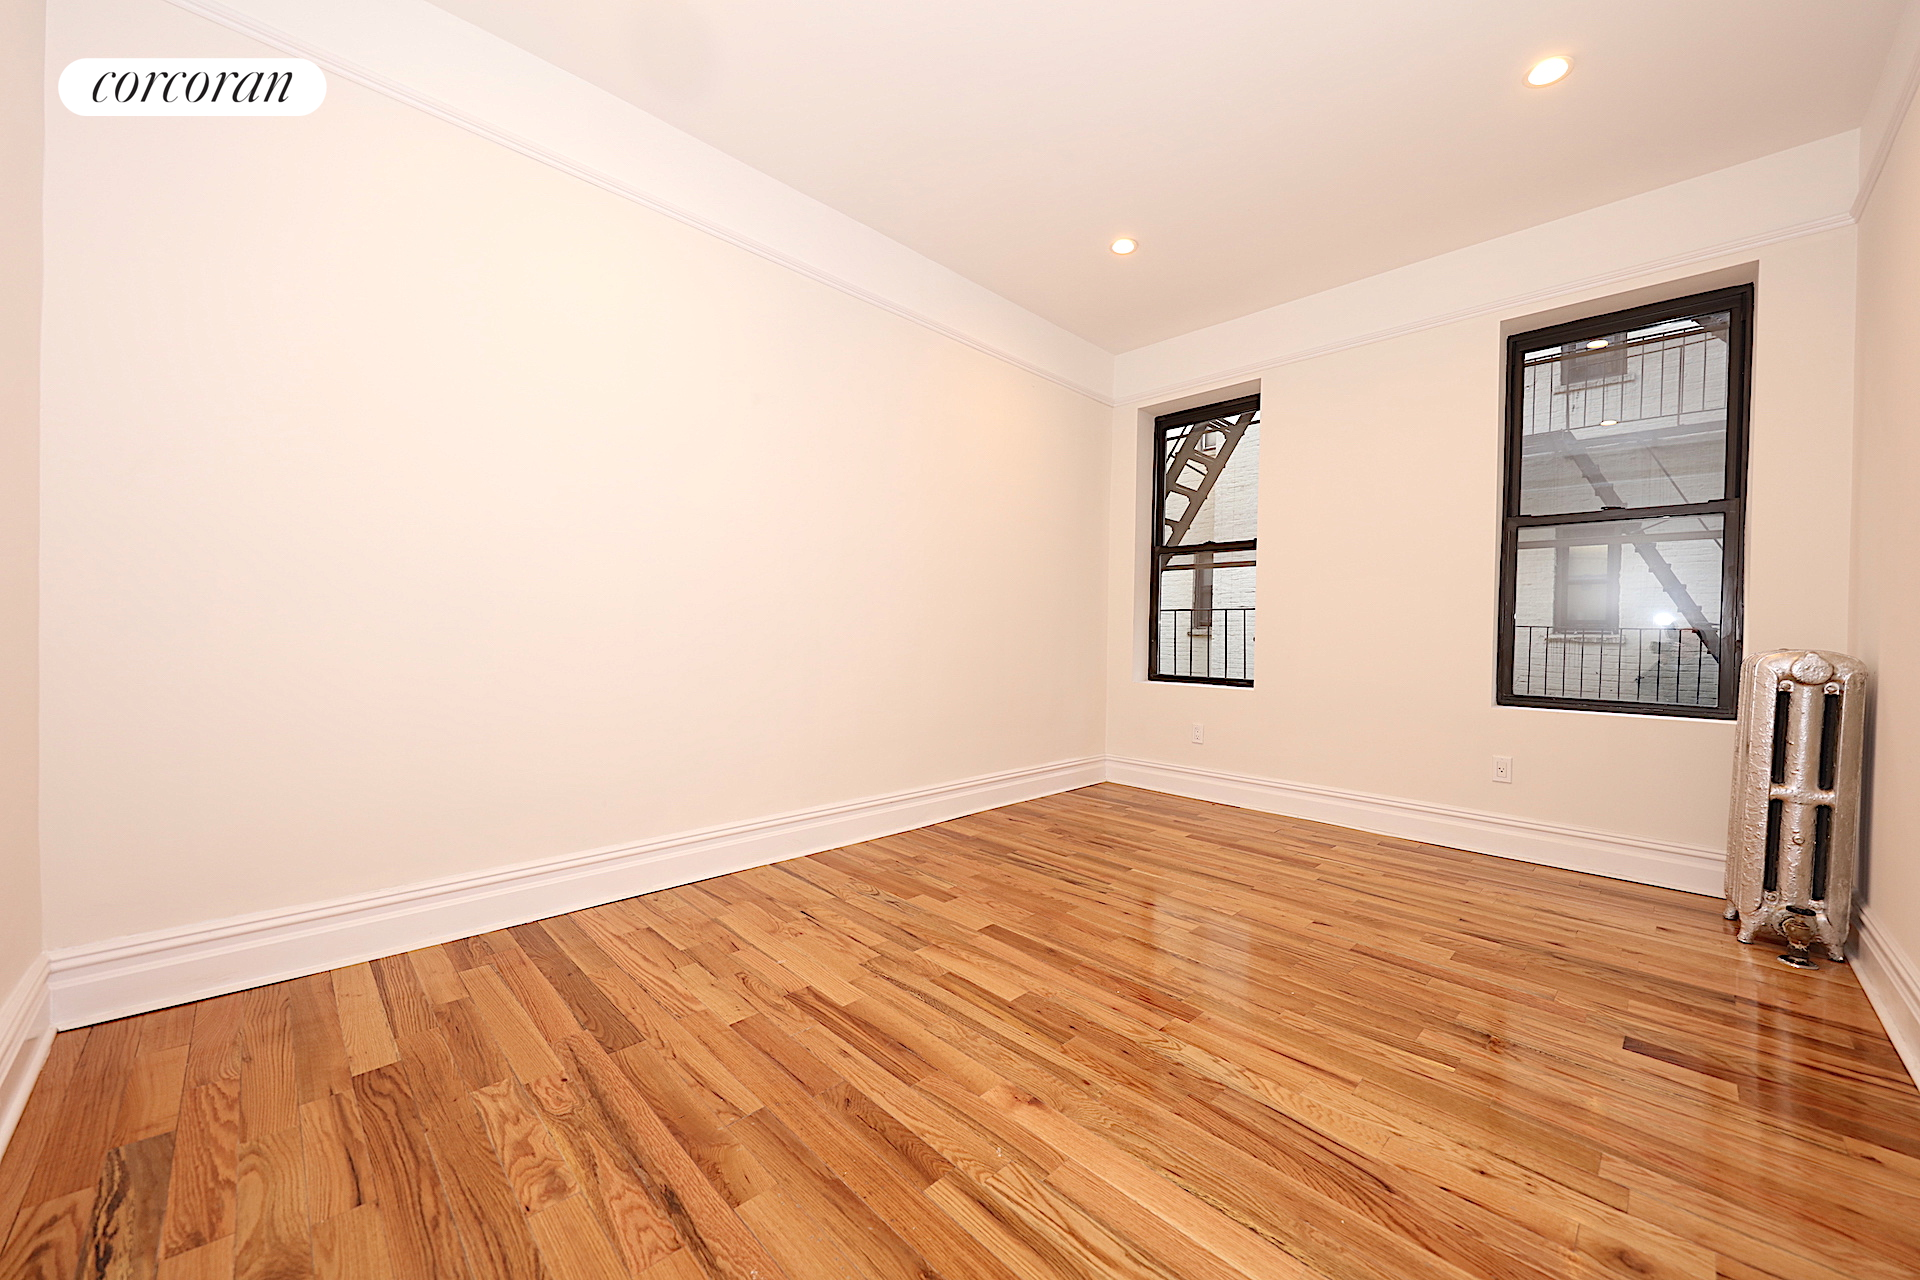 34-06 32nd Street, 1B, Living Room